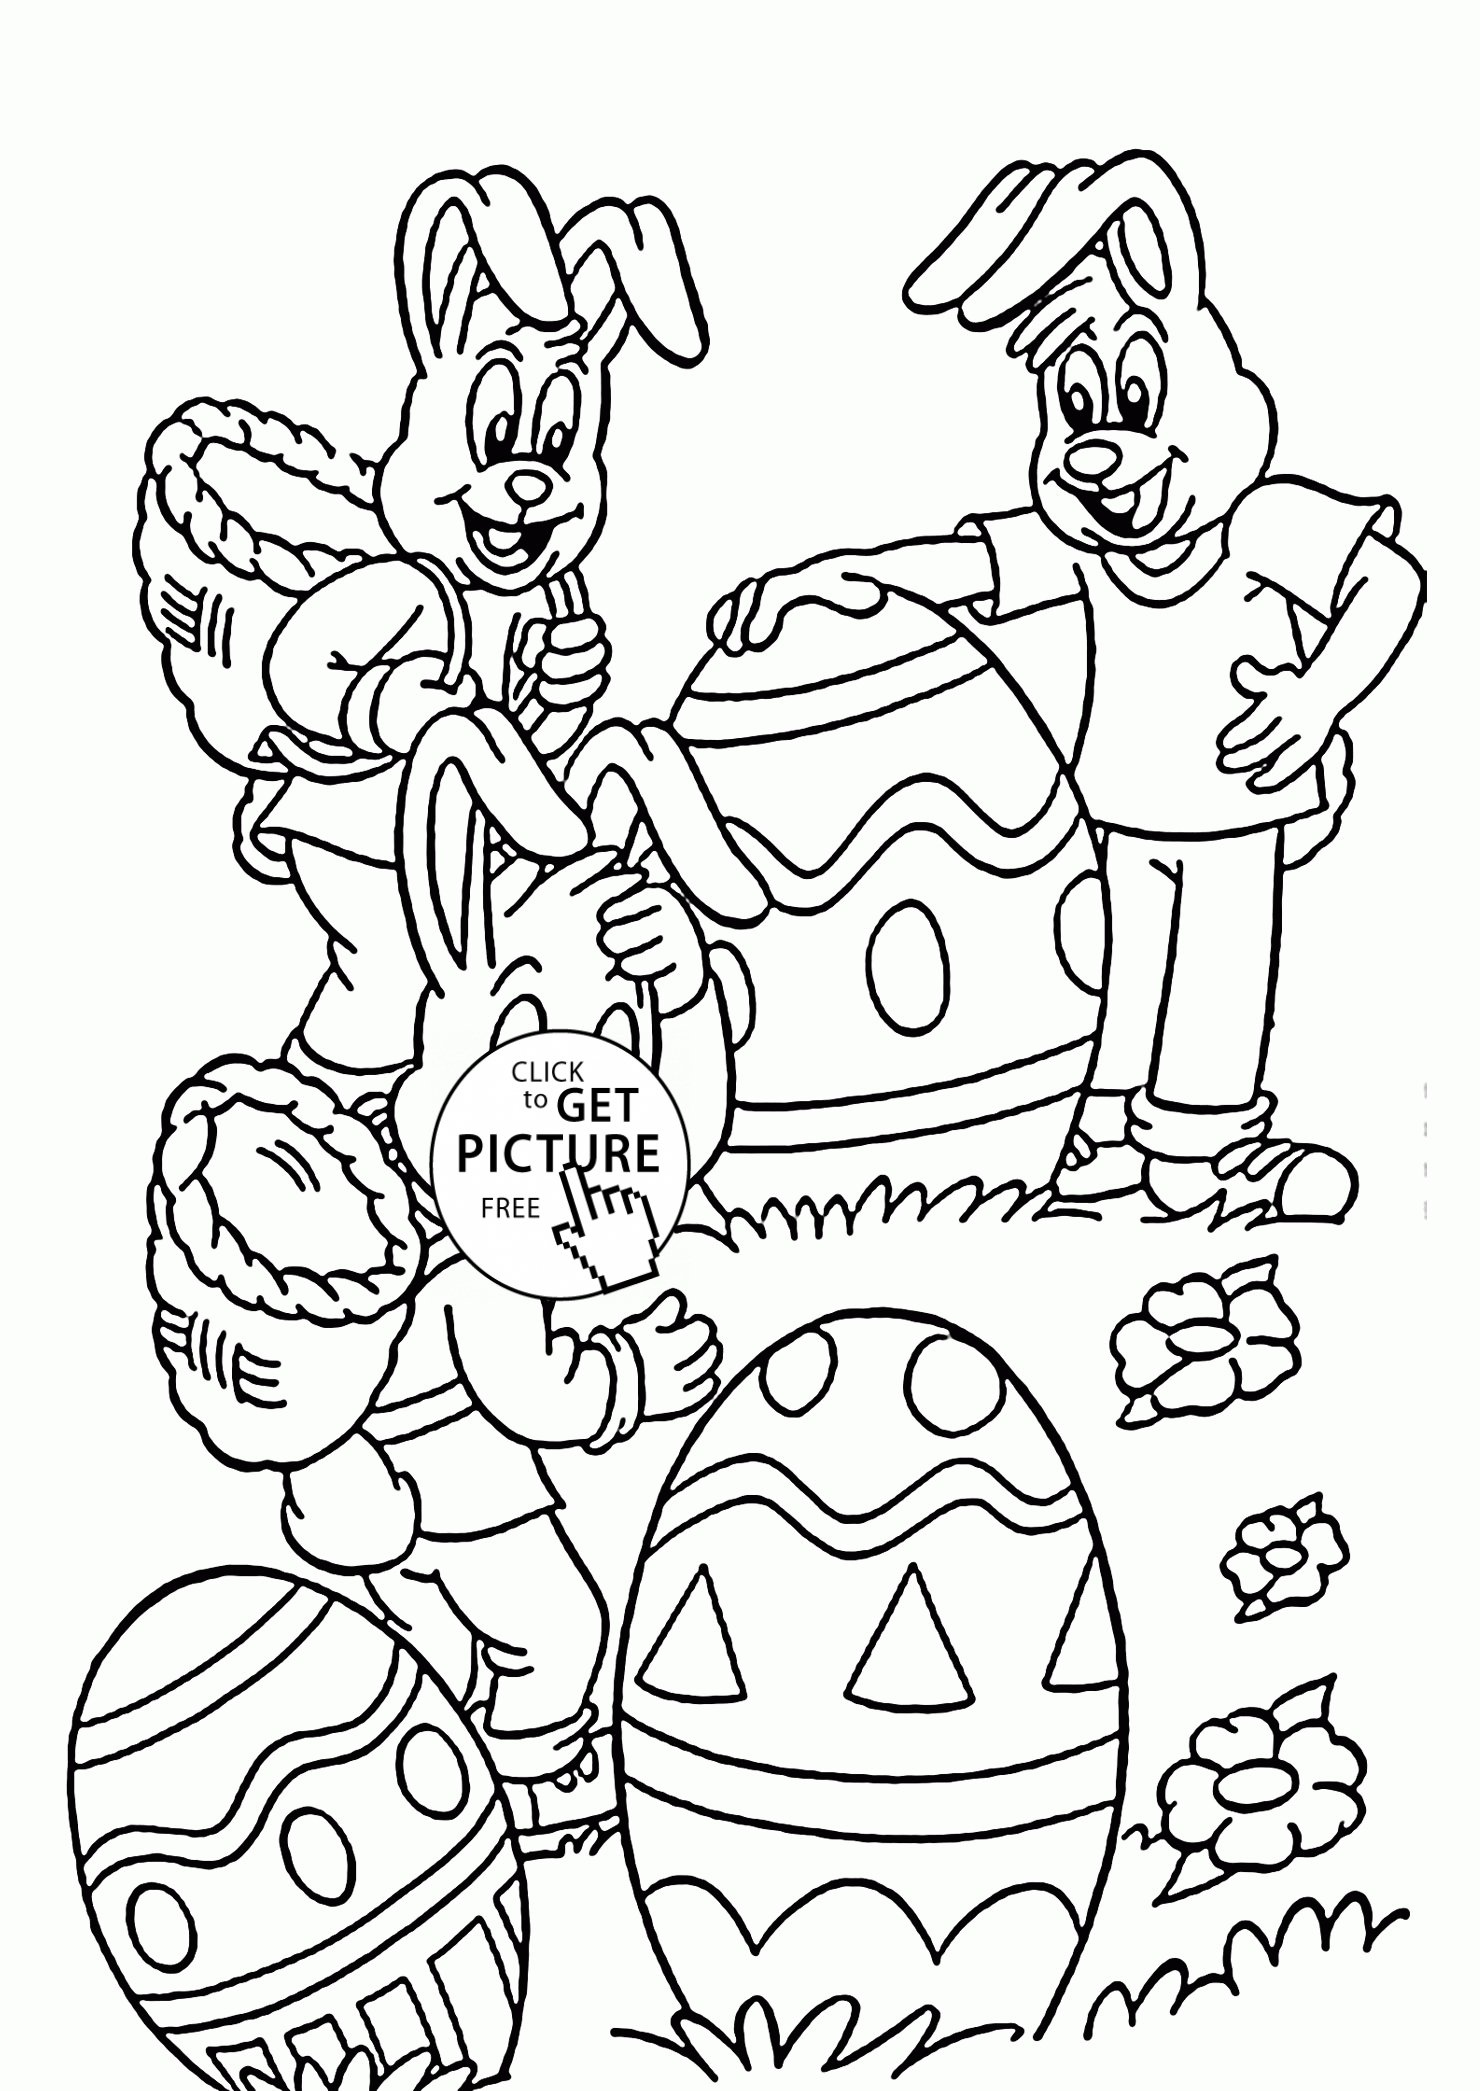 25 Bunny Coloring Pages Free Printable | FREE COLORING PAGES - Part 3